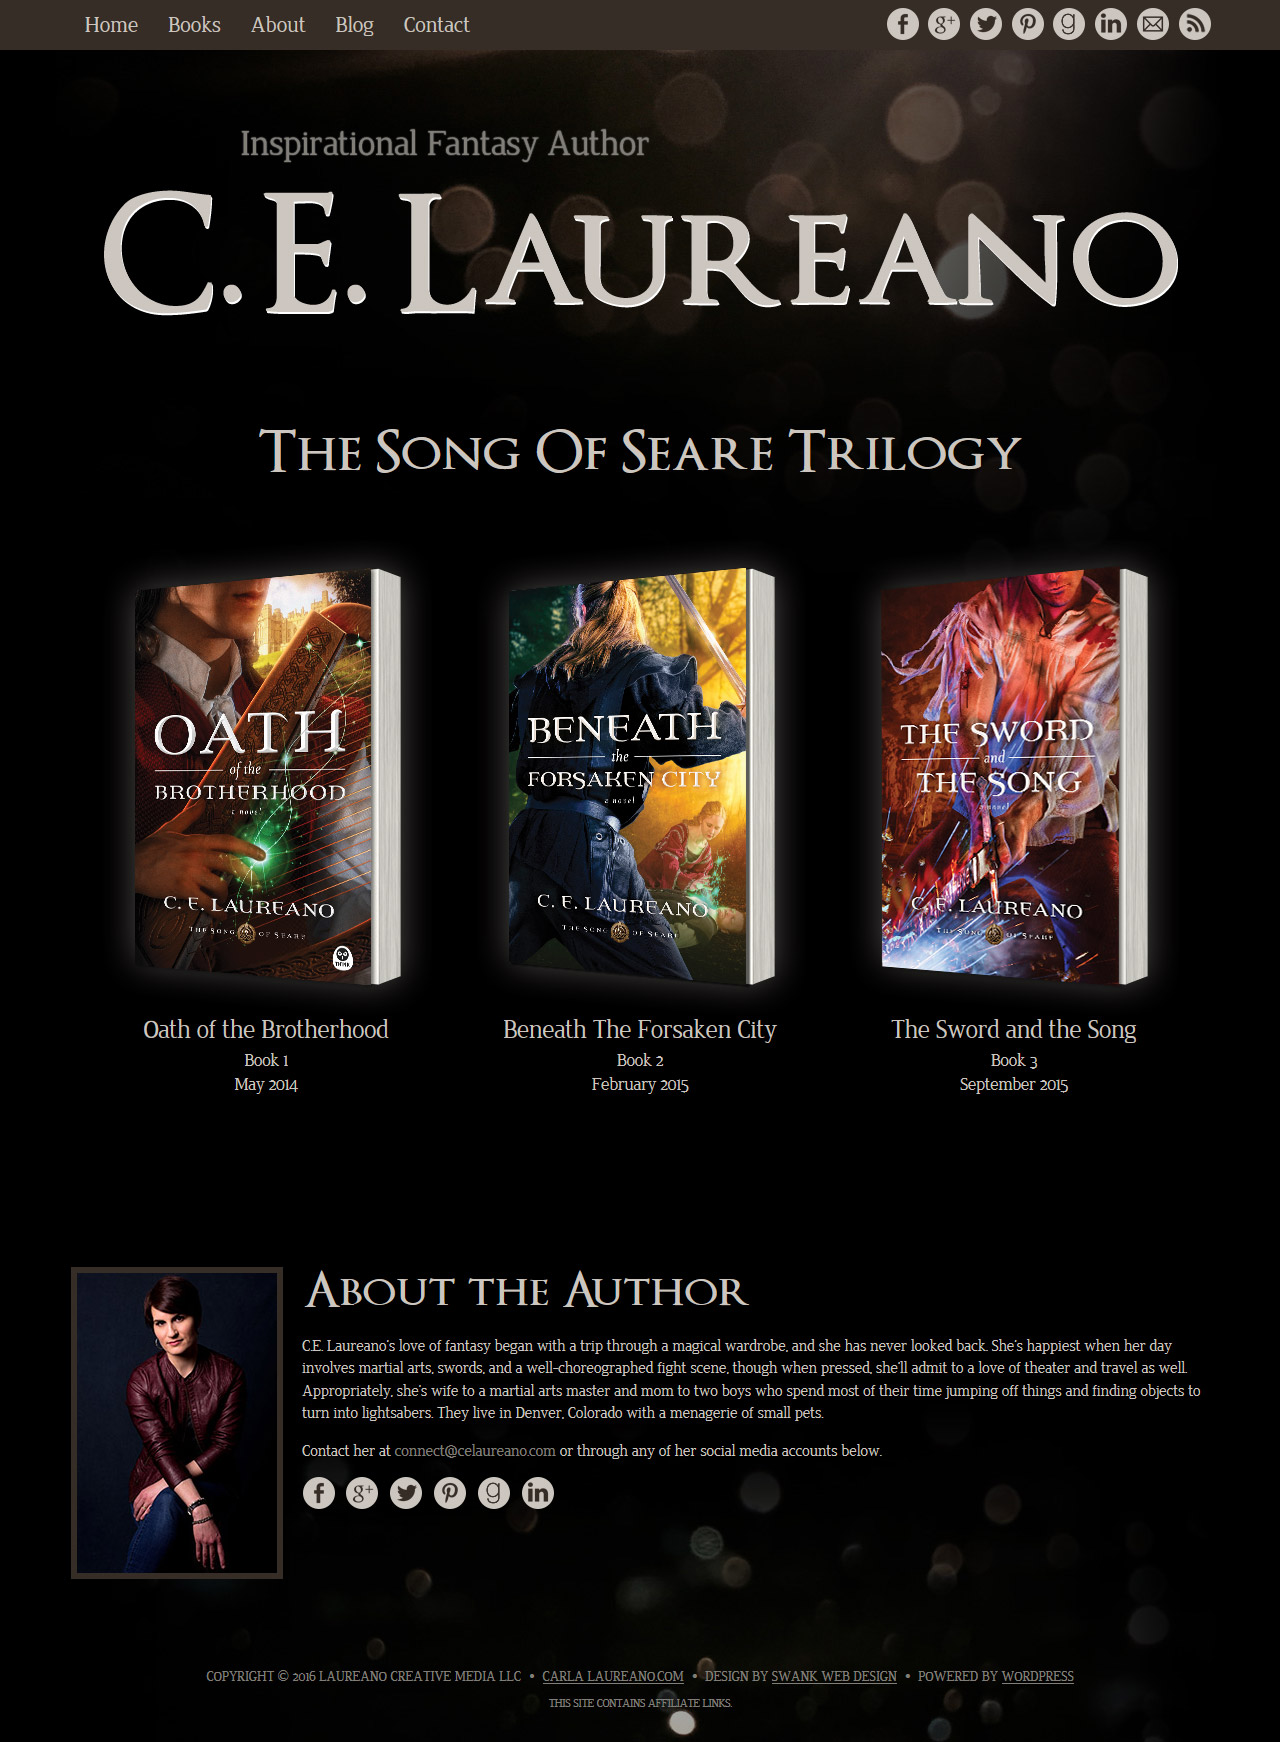 Fantasy Author C.E. Laureano